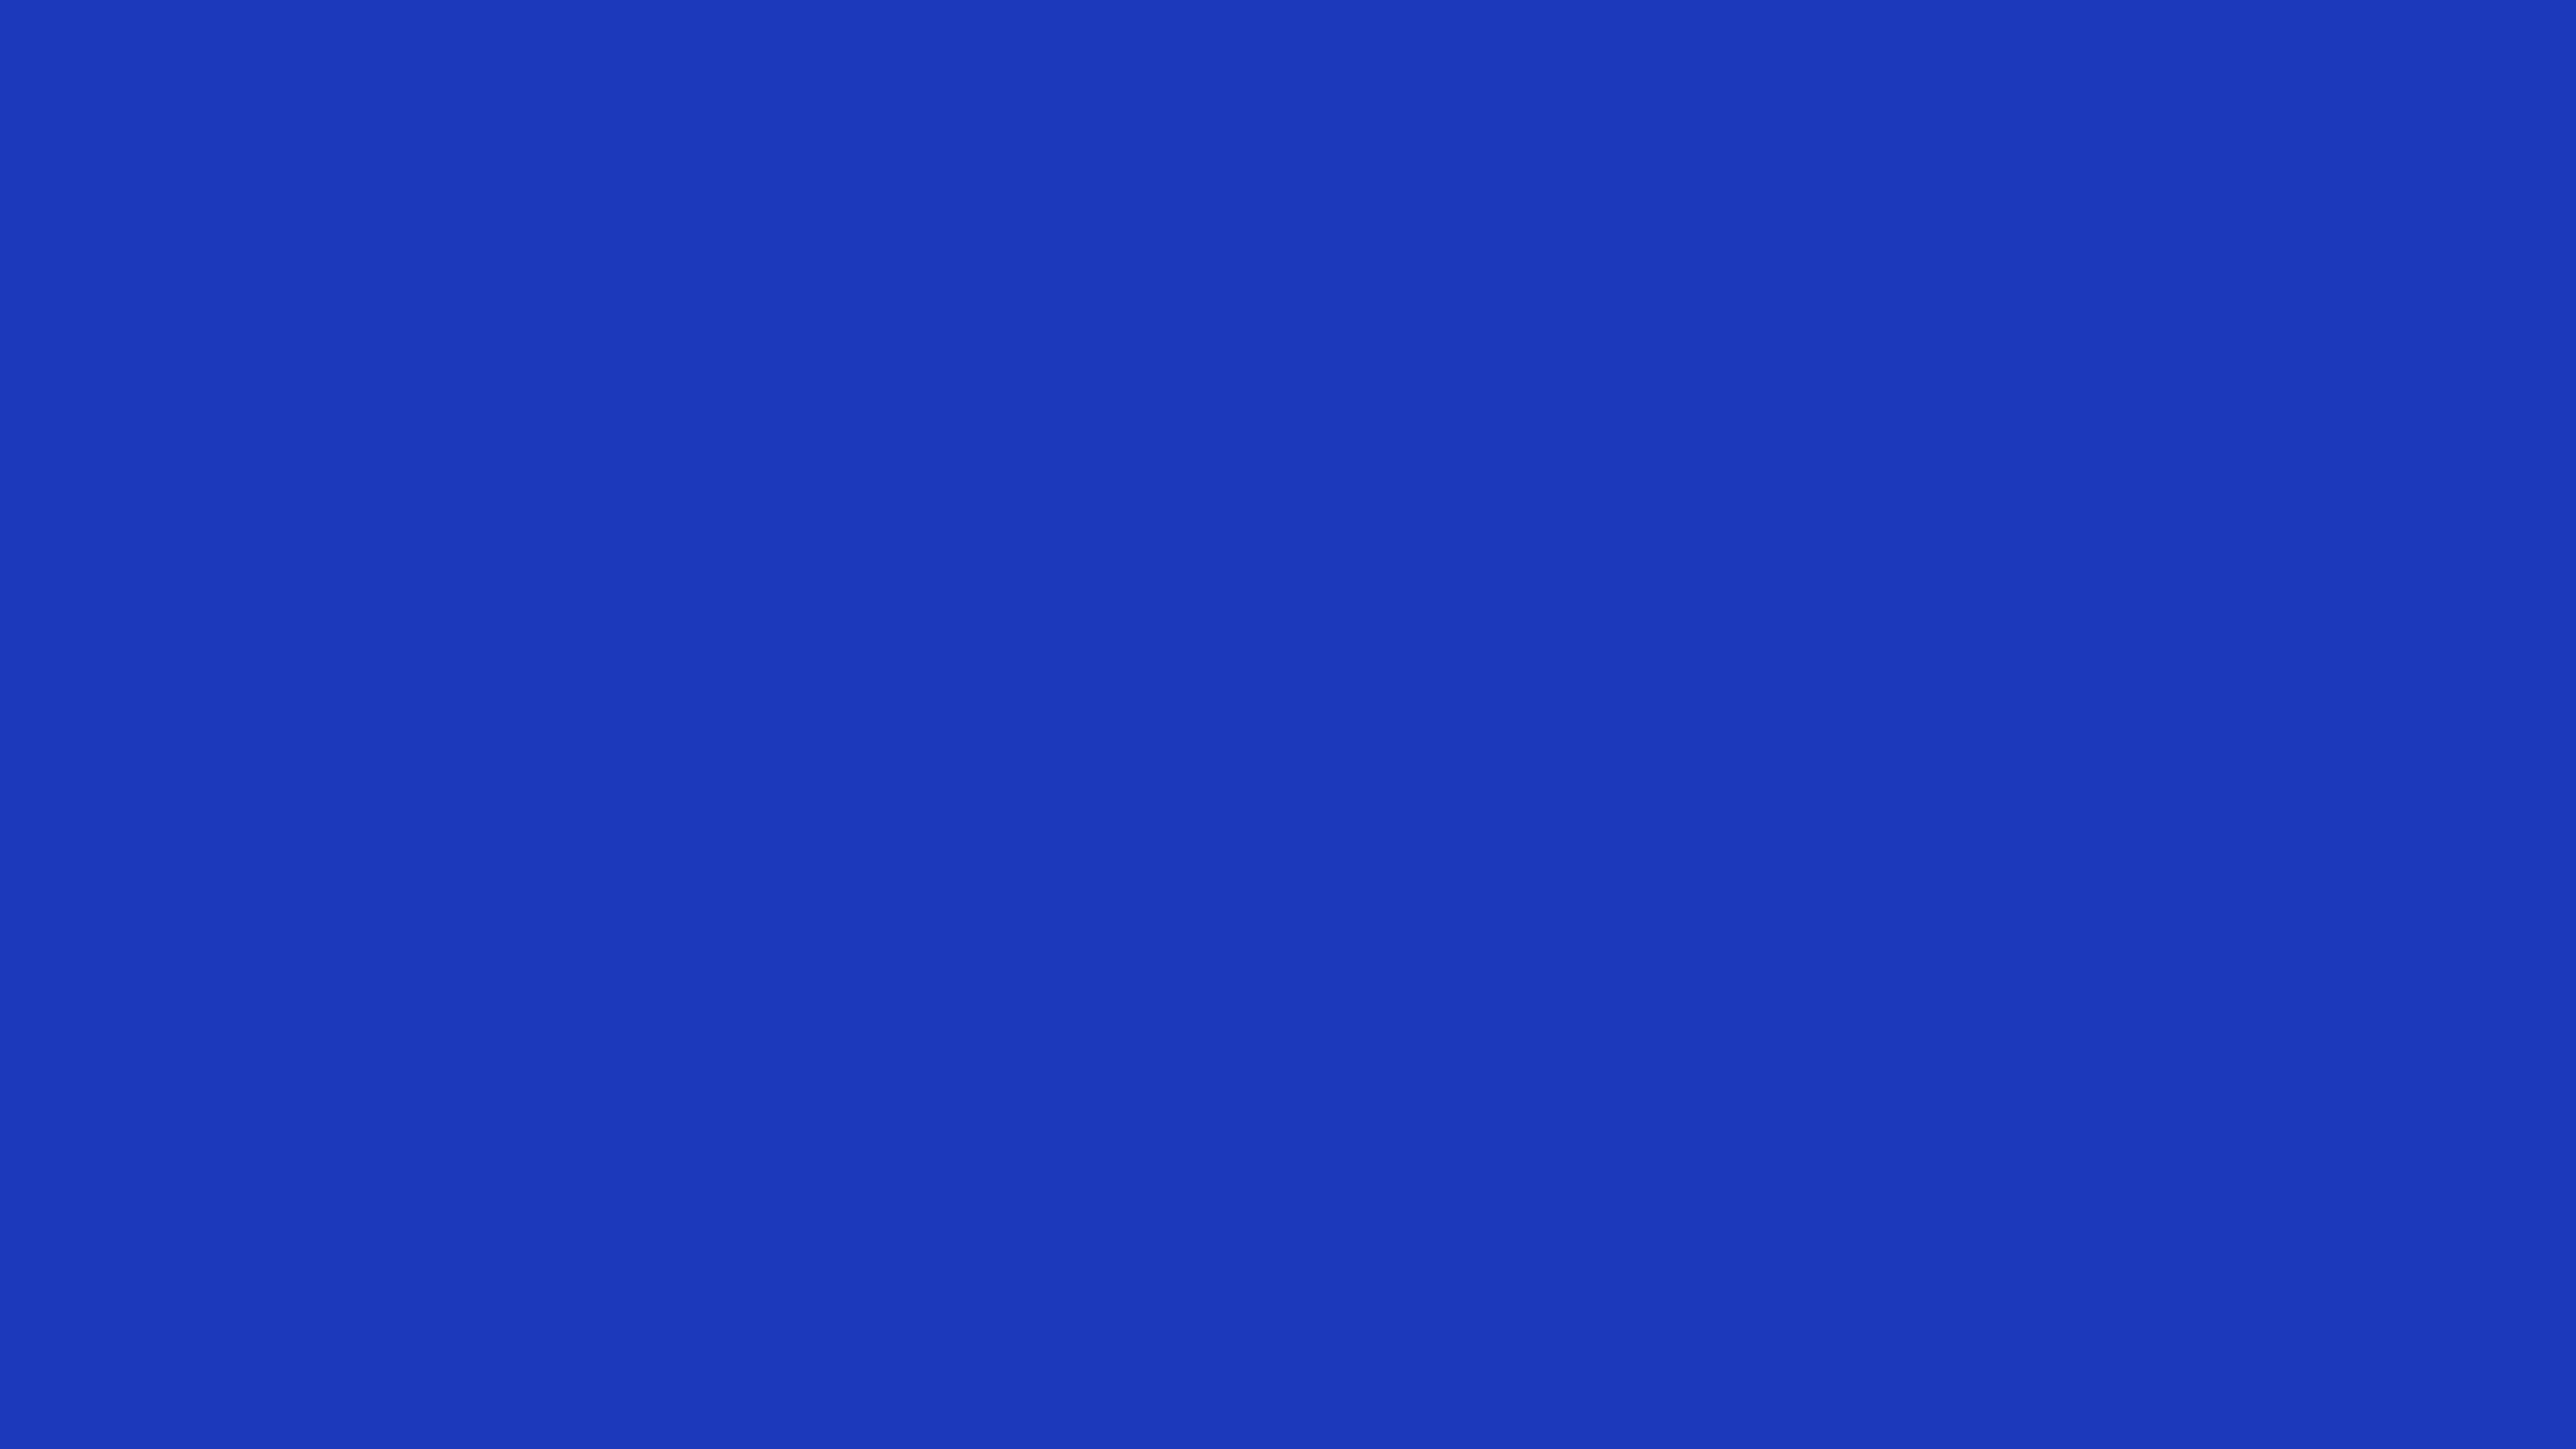 7680x4320 Persian Blue Solid Color Background